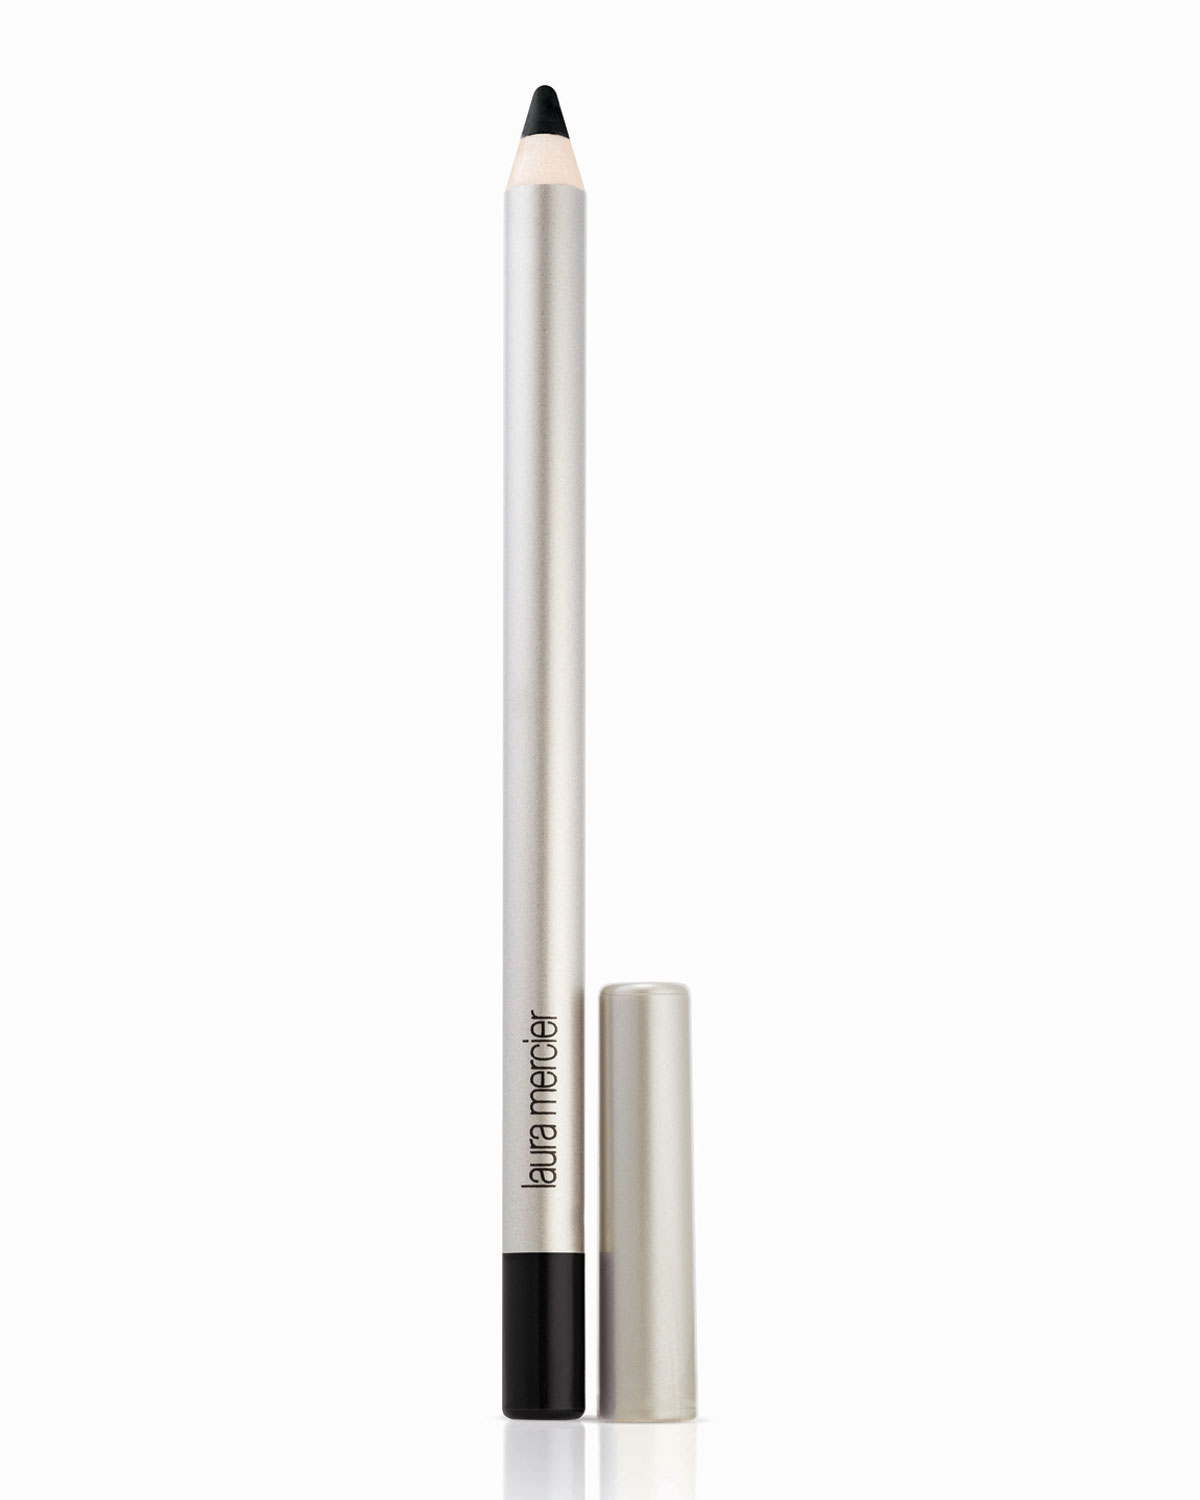 Longwear Eye Pencil - Espresso in Black